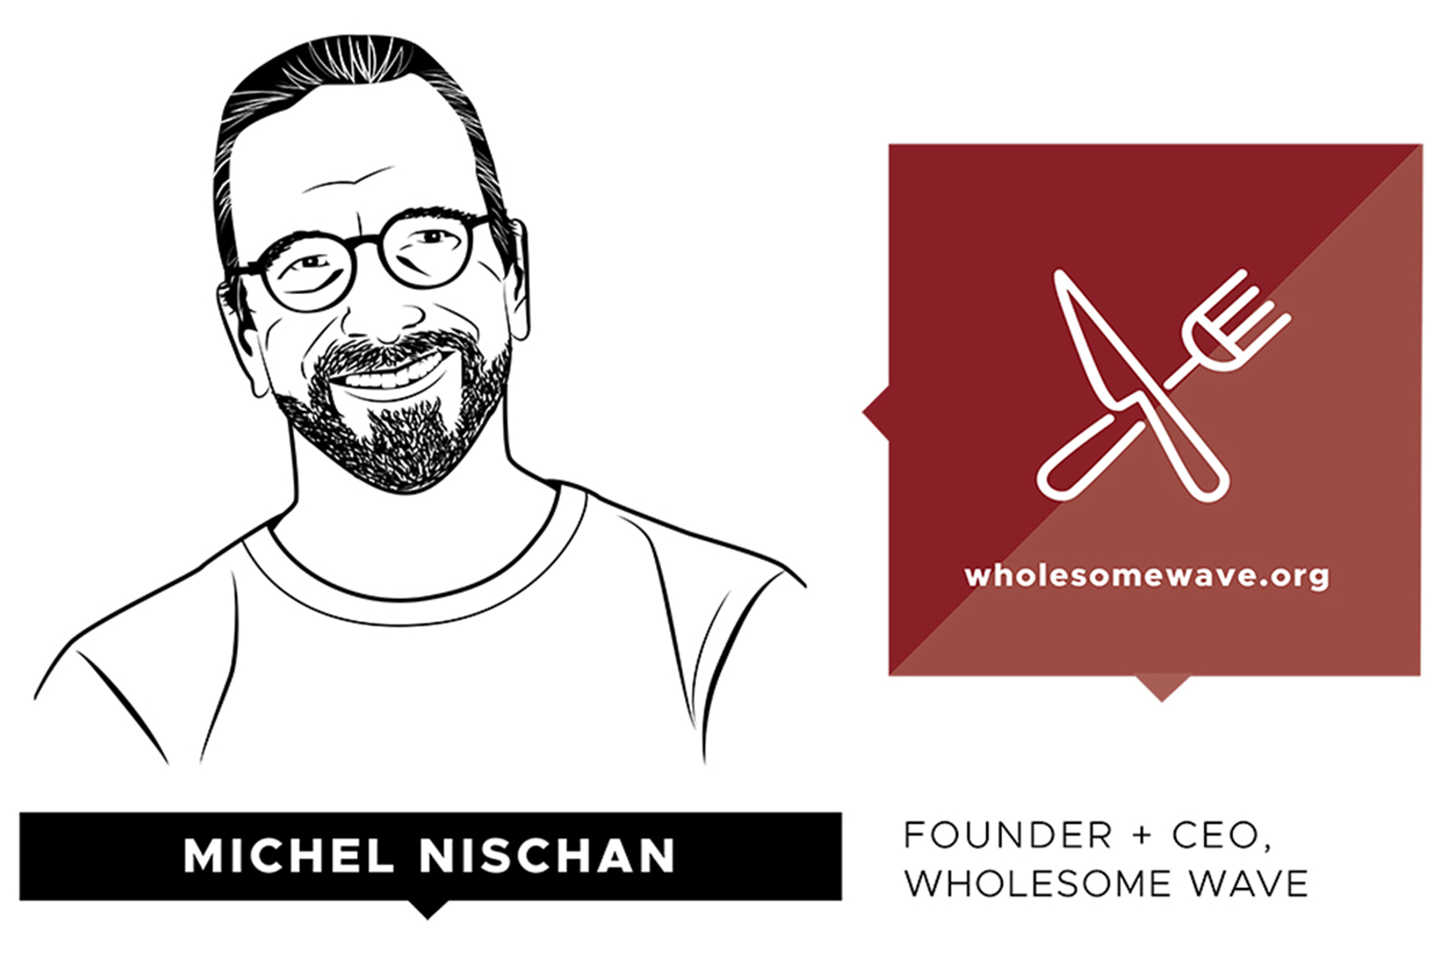 Michel Nischan, fundador y Director Ejecutivo de Wholesome Wave (www.wholesomewave.org)